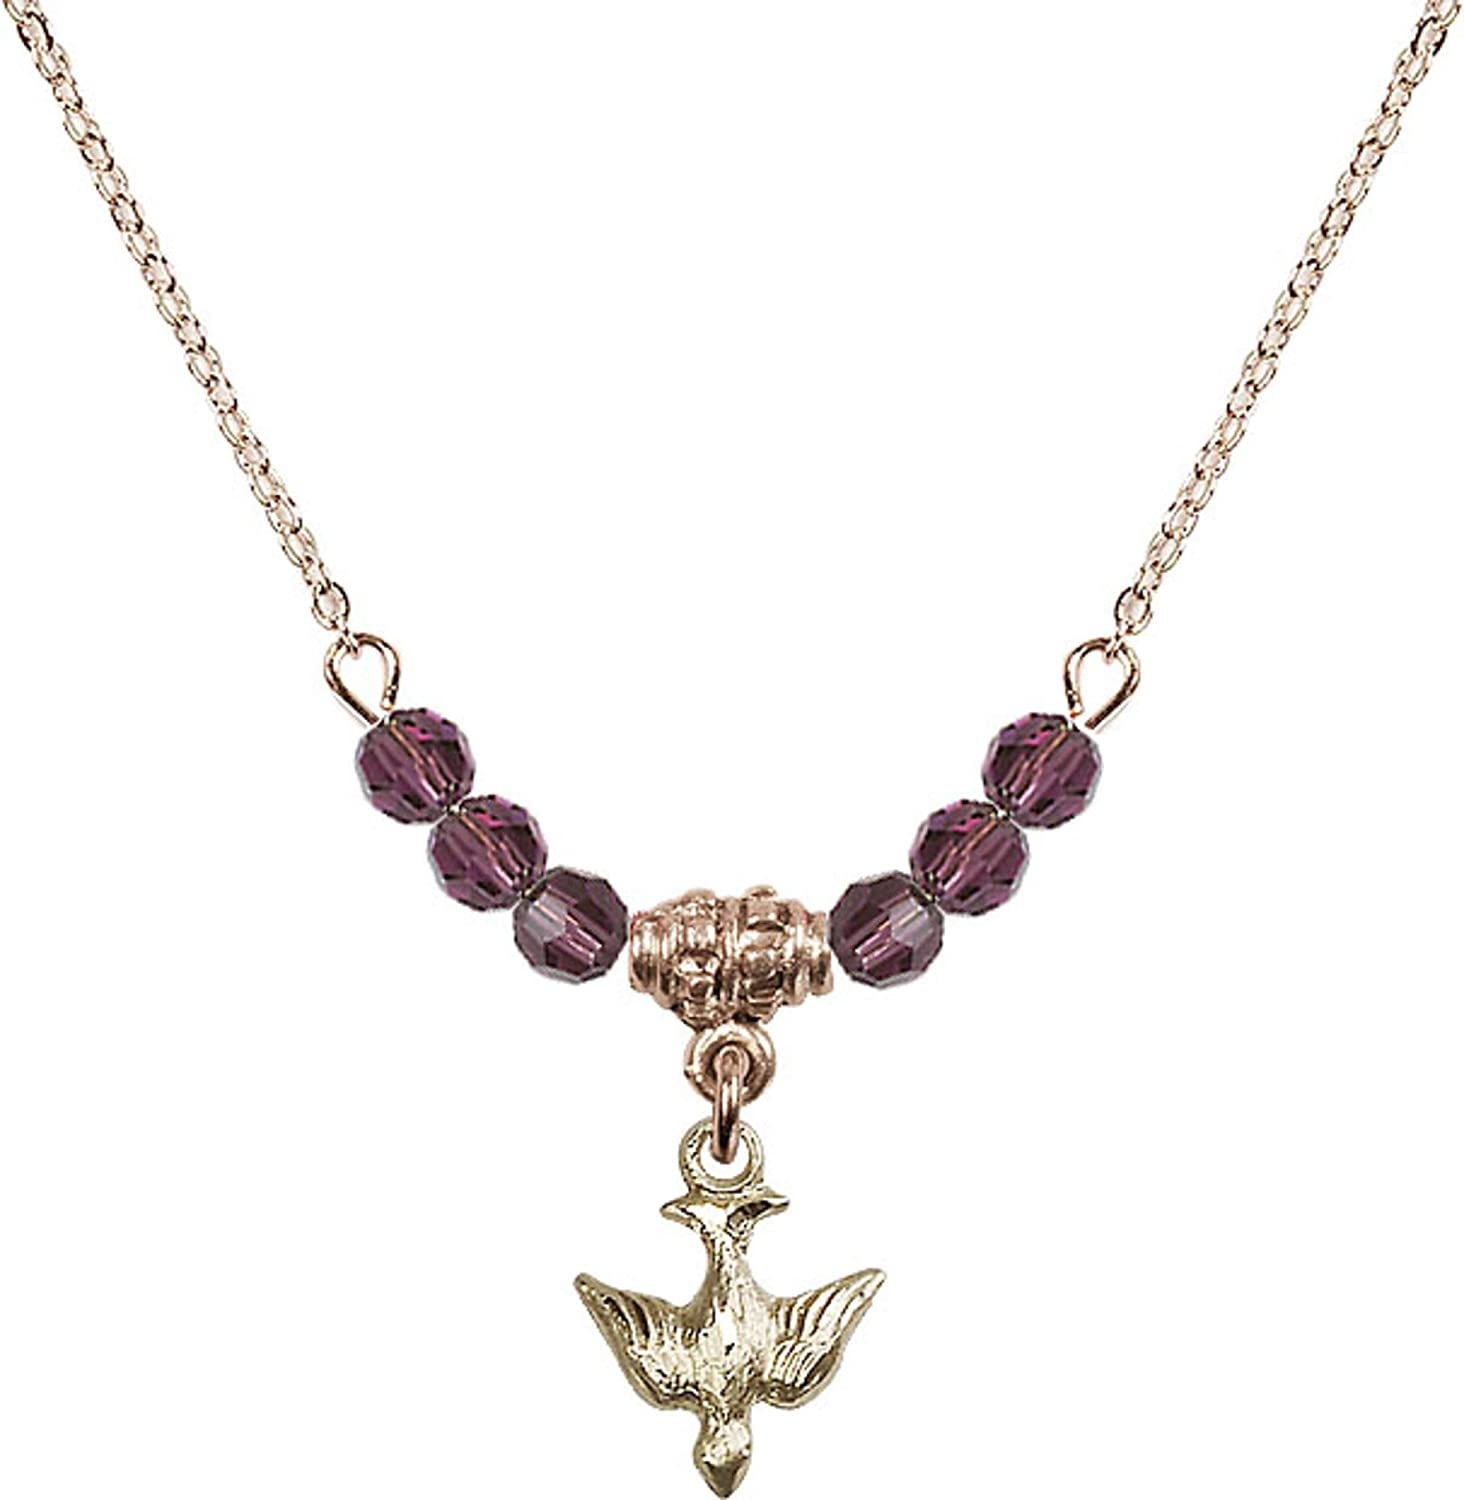 Bonyak Jewelry 18 Inch Hamilton Gold Plated Necklace w// 4mm Purple February Birth Month Stone Beads and Holy Spirit Charm